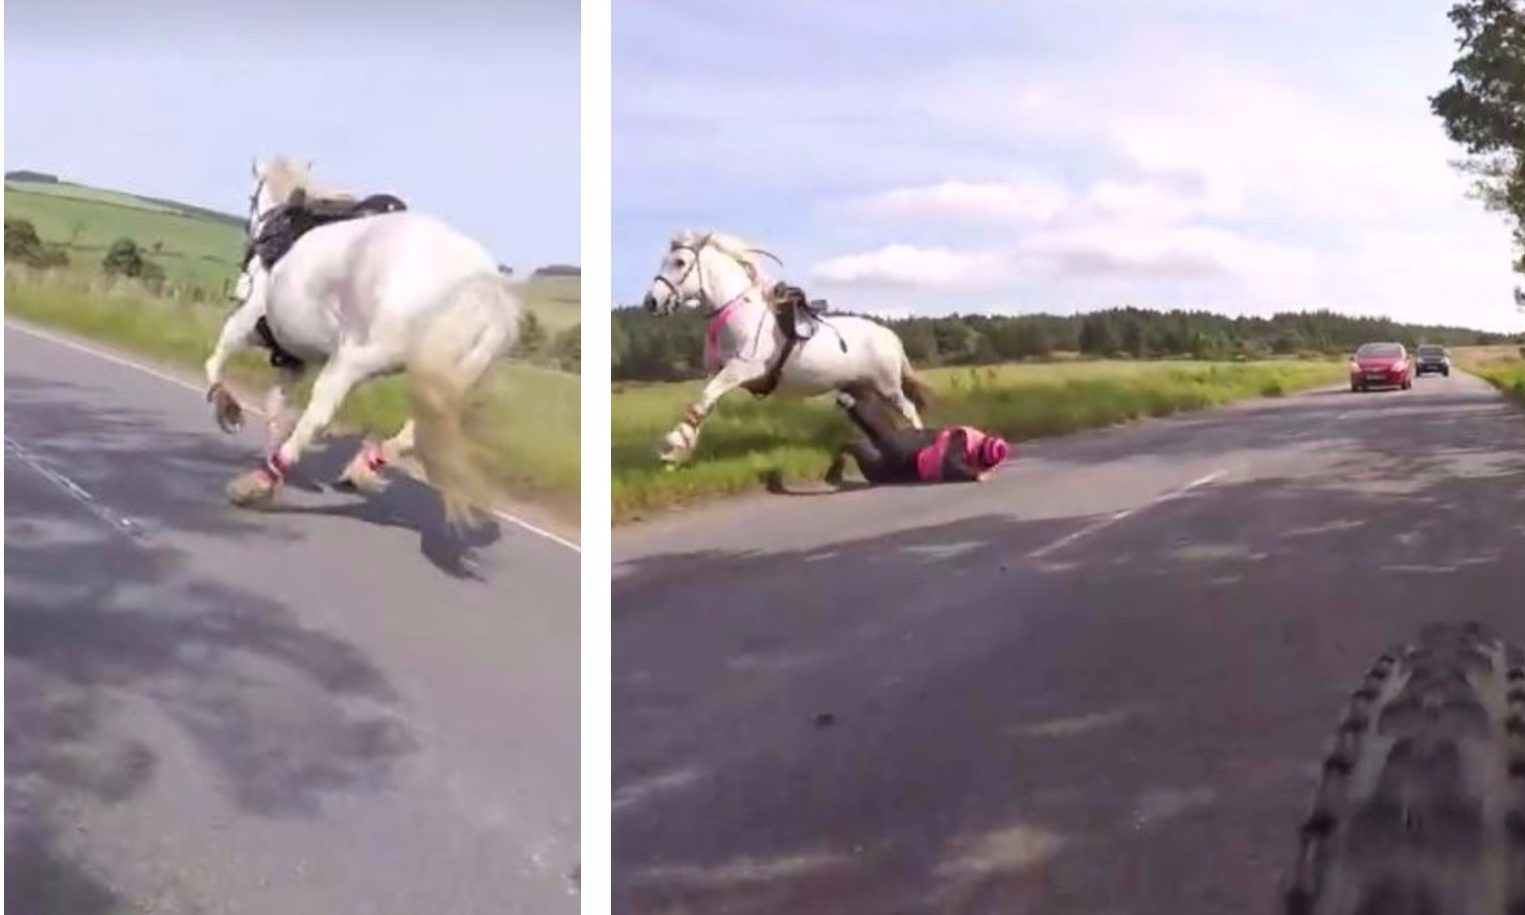 The horse was frightened by the overtaking lorry.